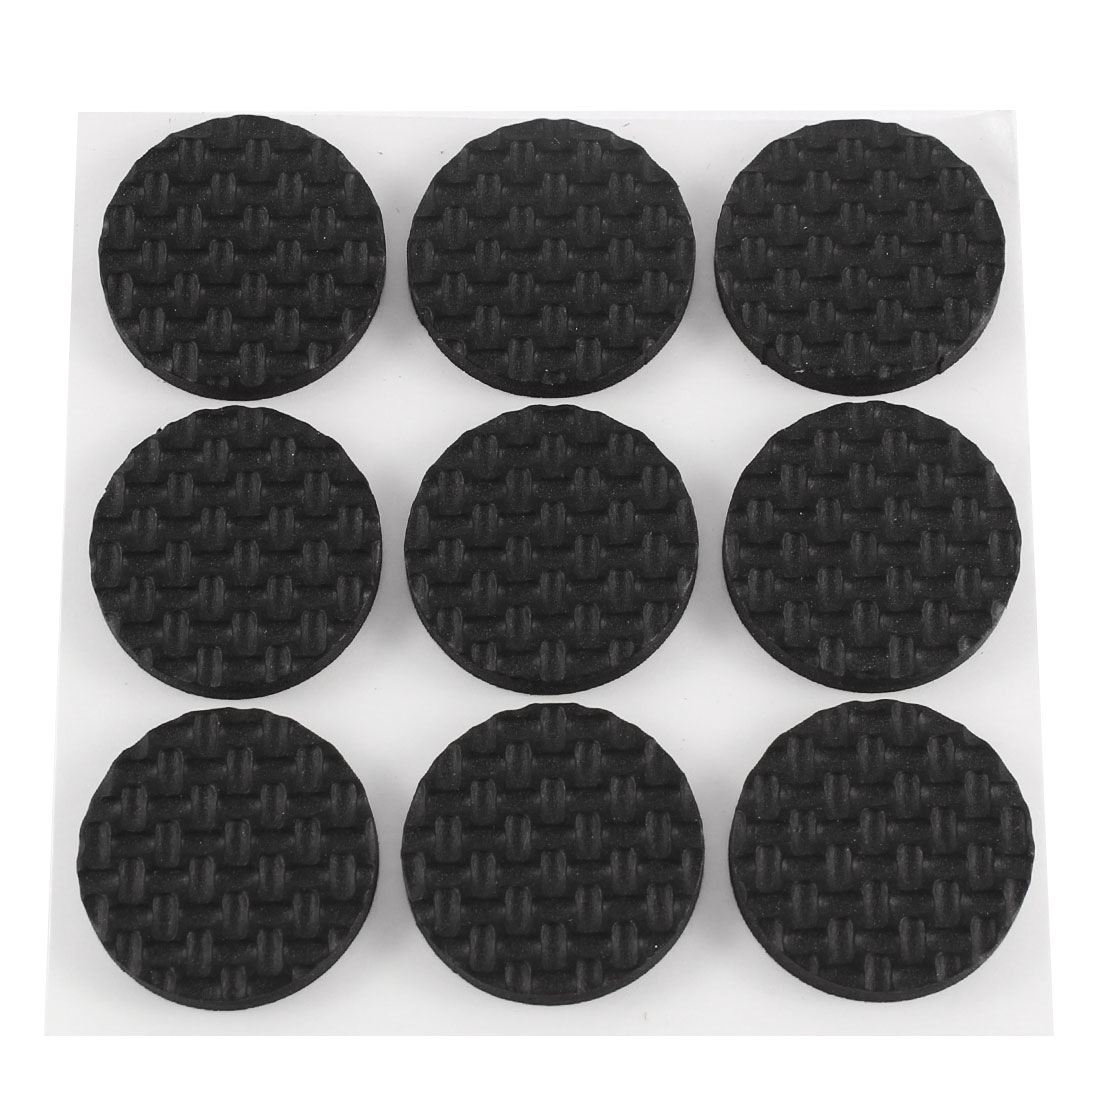 9pcs 25mm Round Self Adhesive Chair Table Furniture Pads Floor Scratch Protector